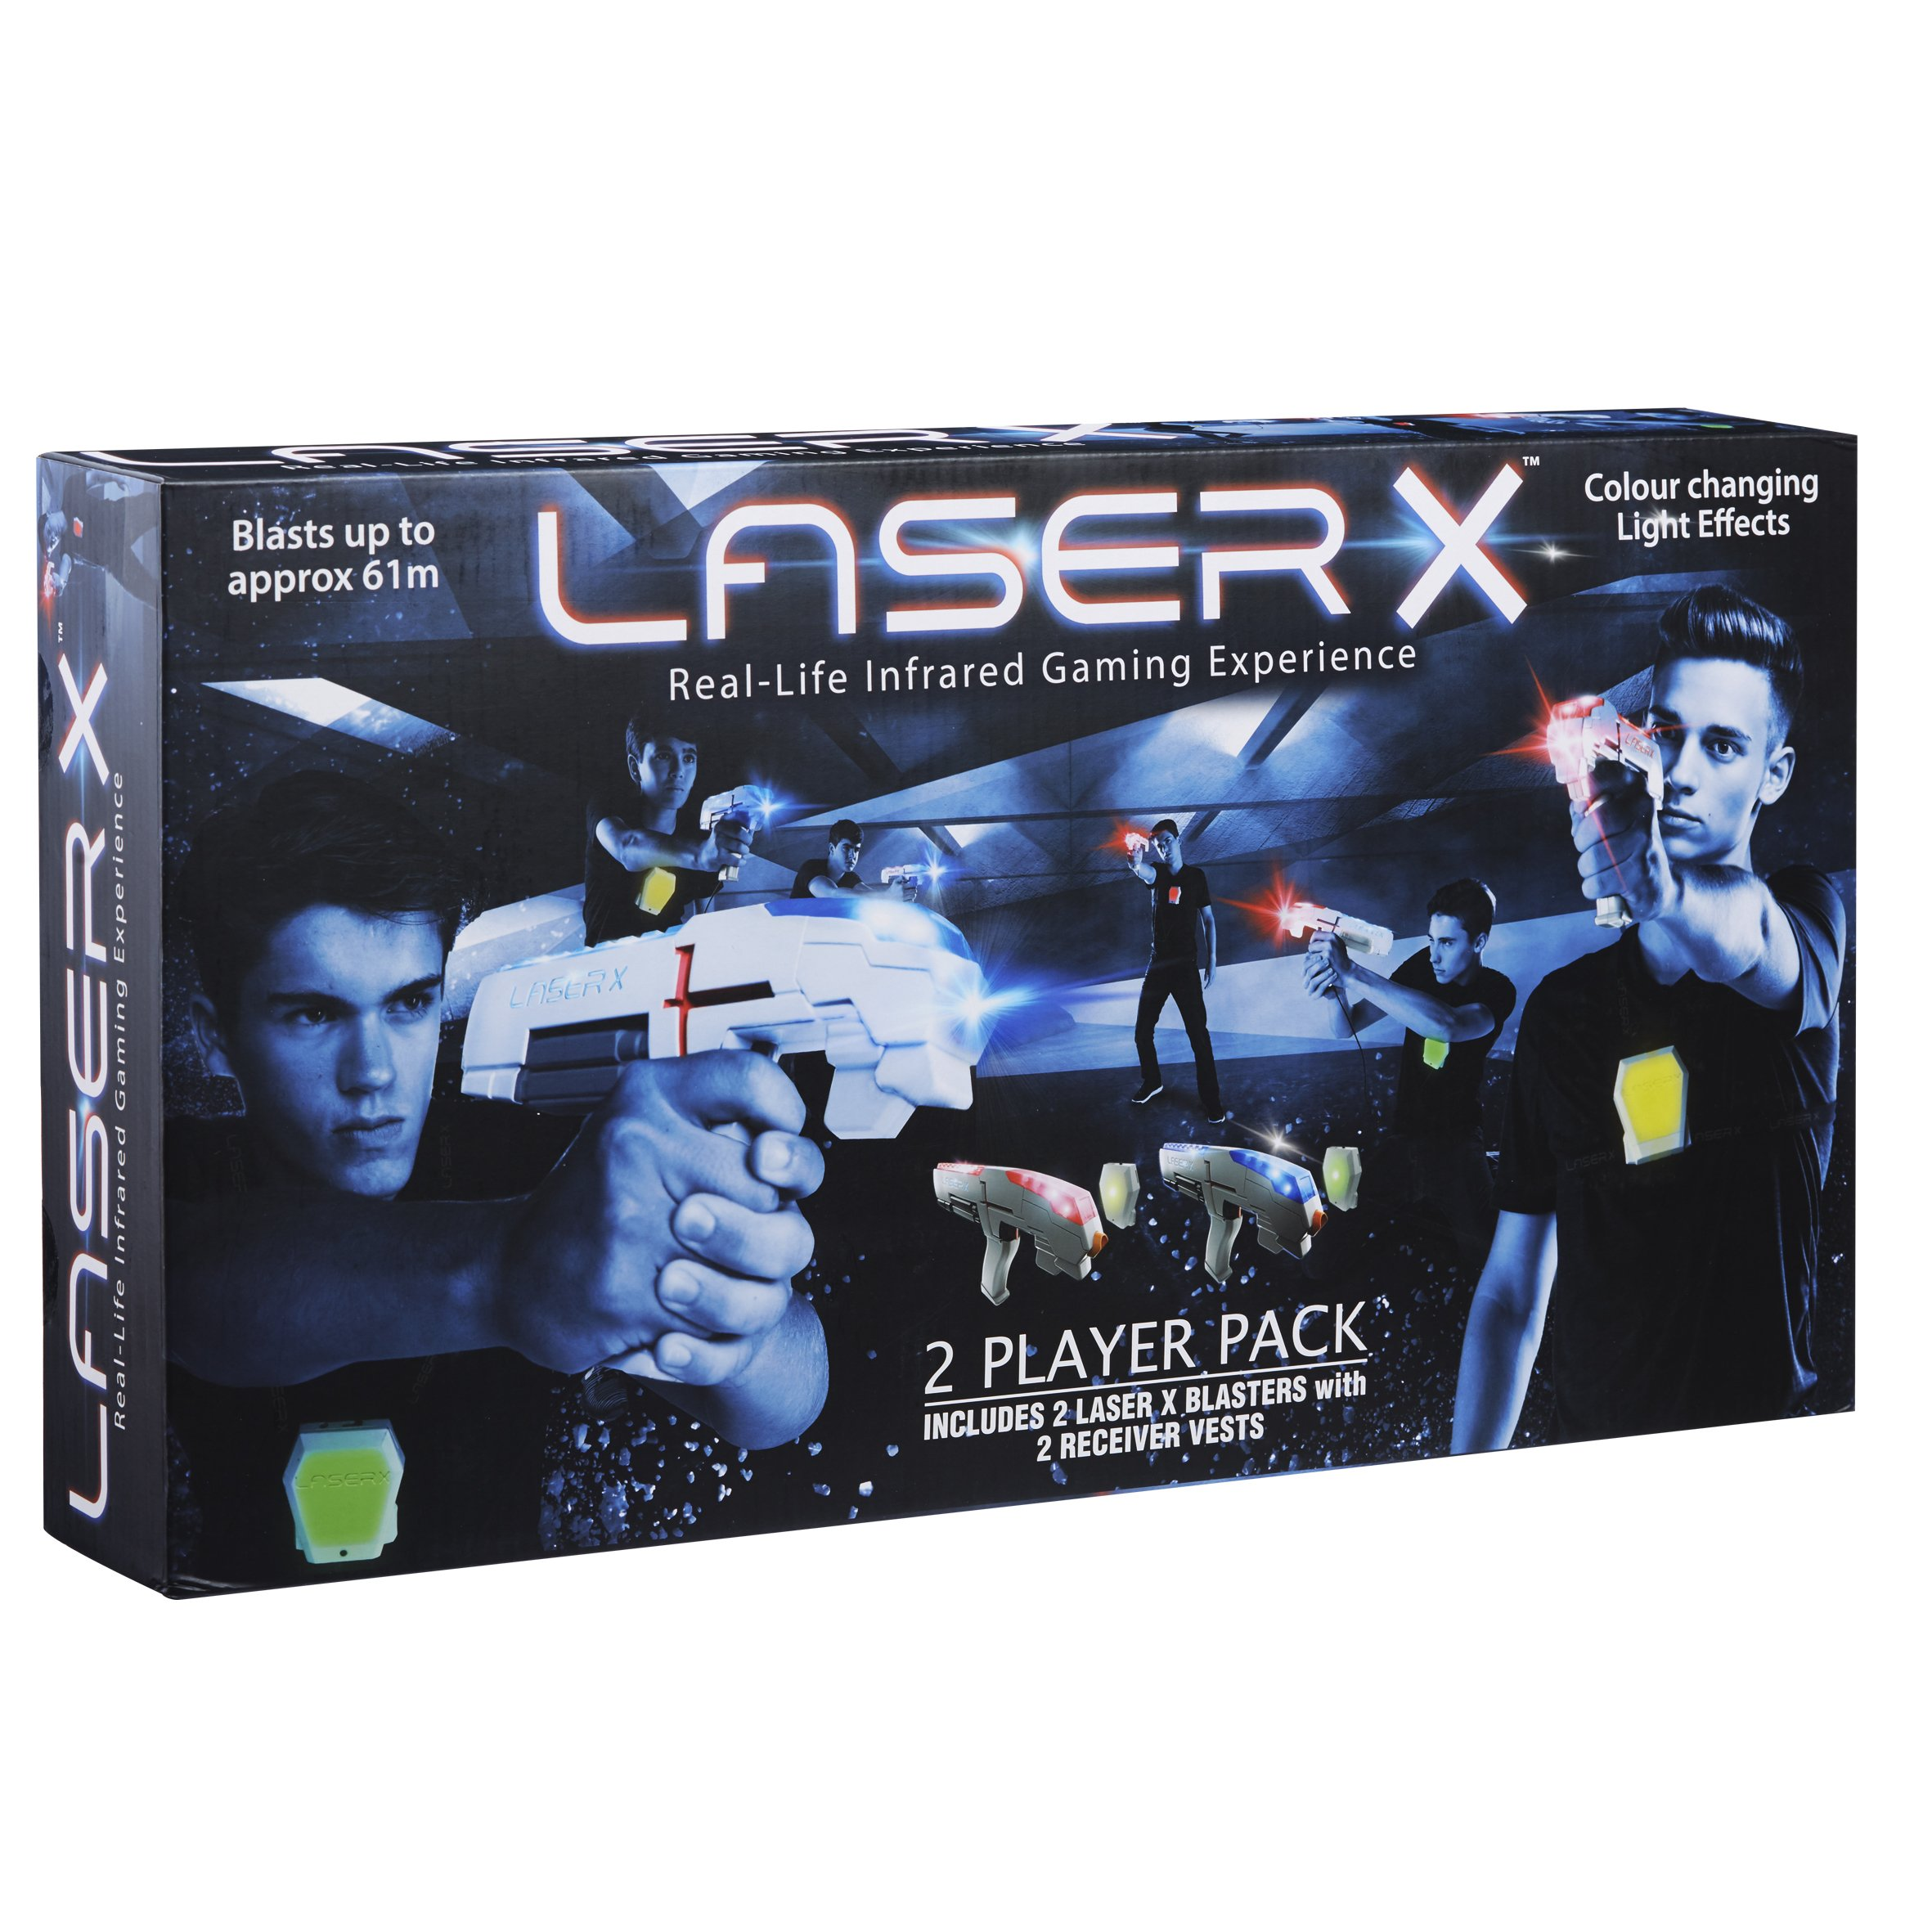 10 Of The Best Laser Tag Sets 2018 Gears Way Switch Multiple Lights Group Picture Image By X 88016 Two Player Gaming Set